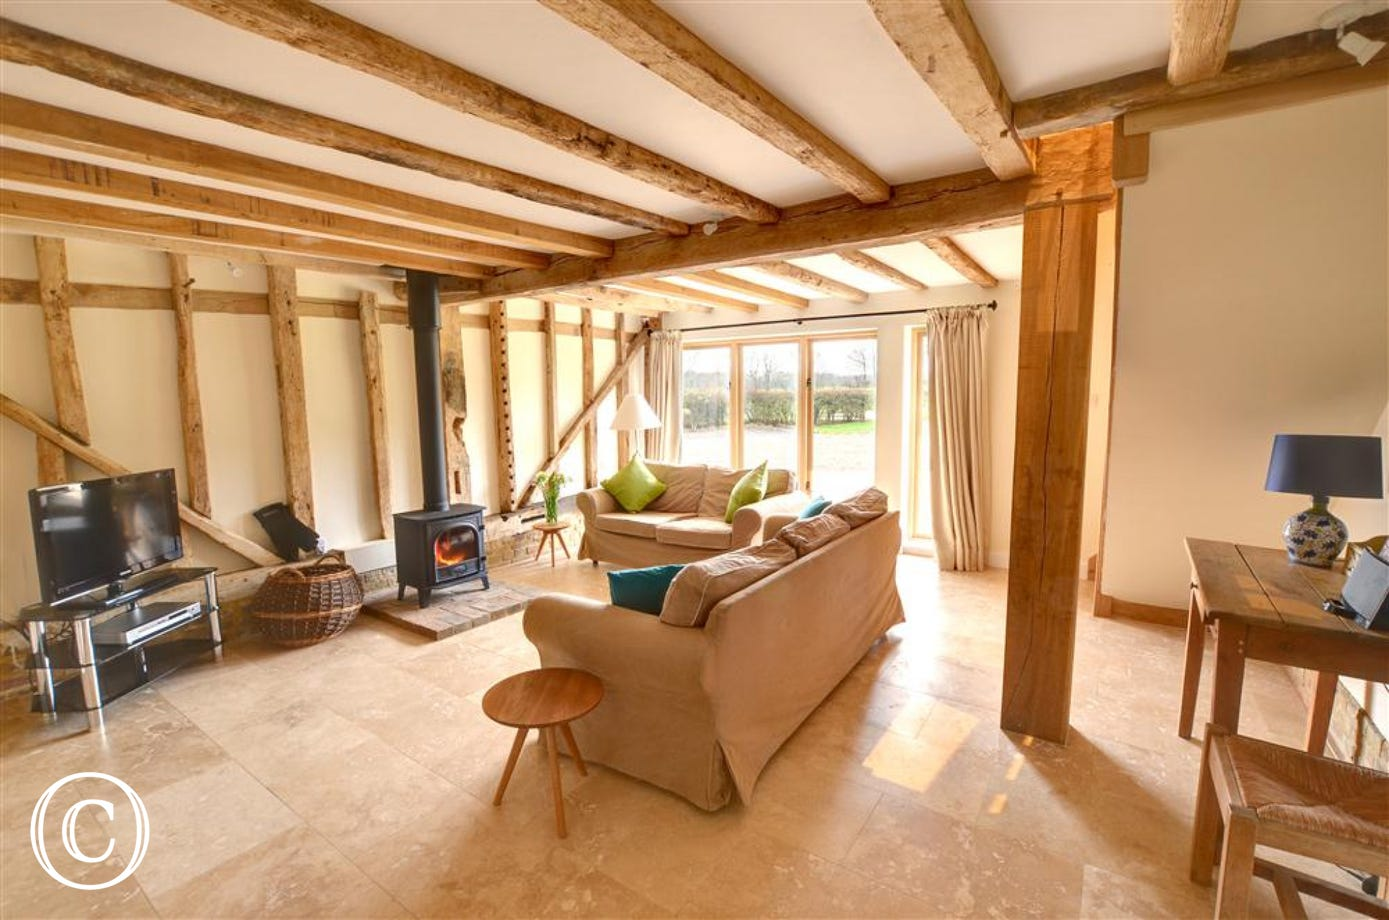 Wonderful under floor heating and free-standing wood burning stove in this truly stunning sitting room